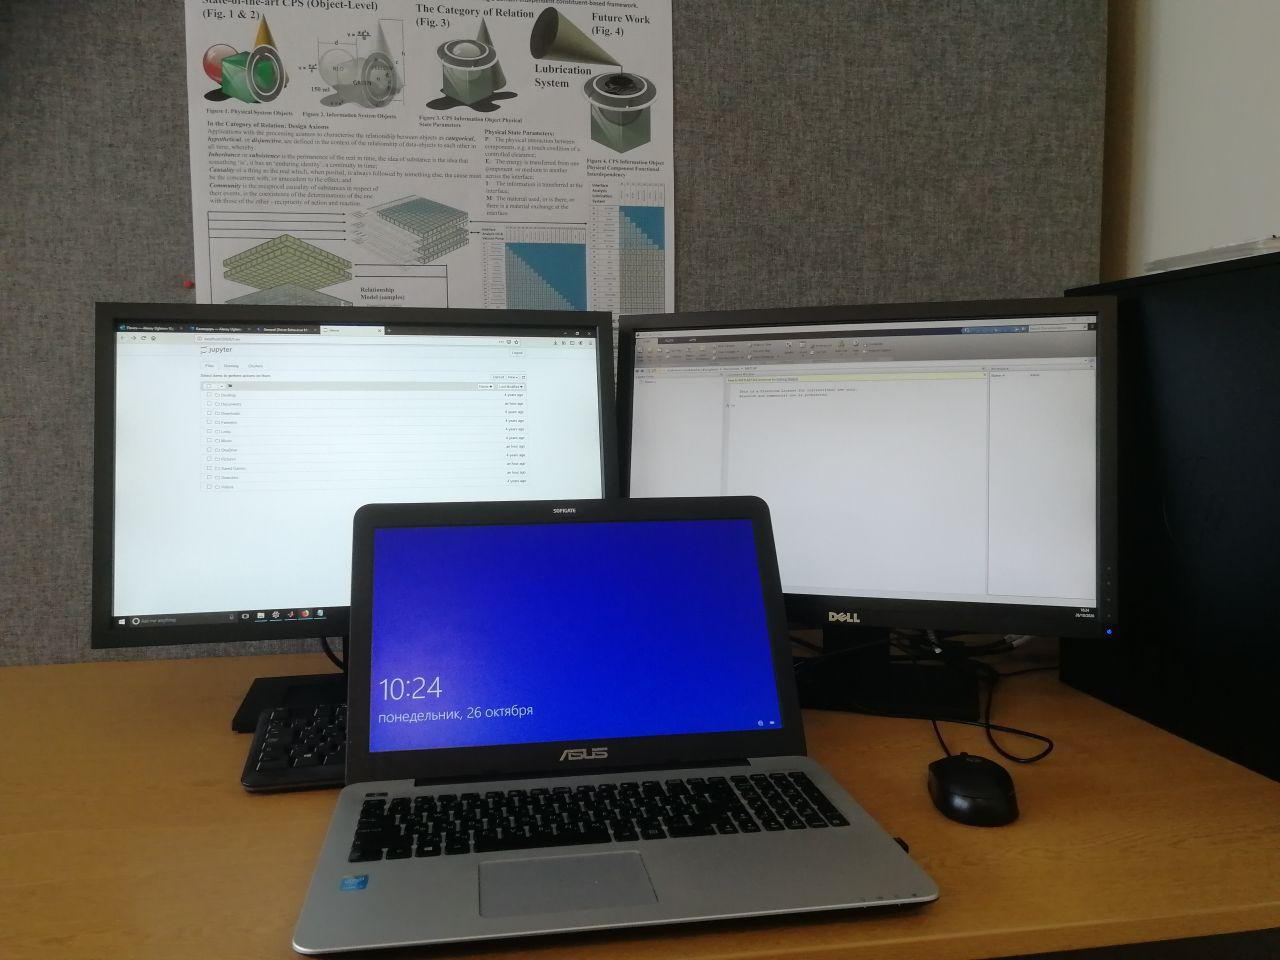 Workstation made up of 3x PCs